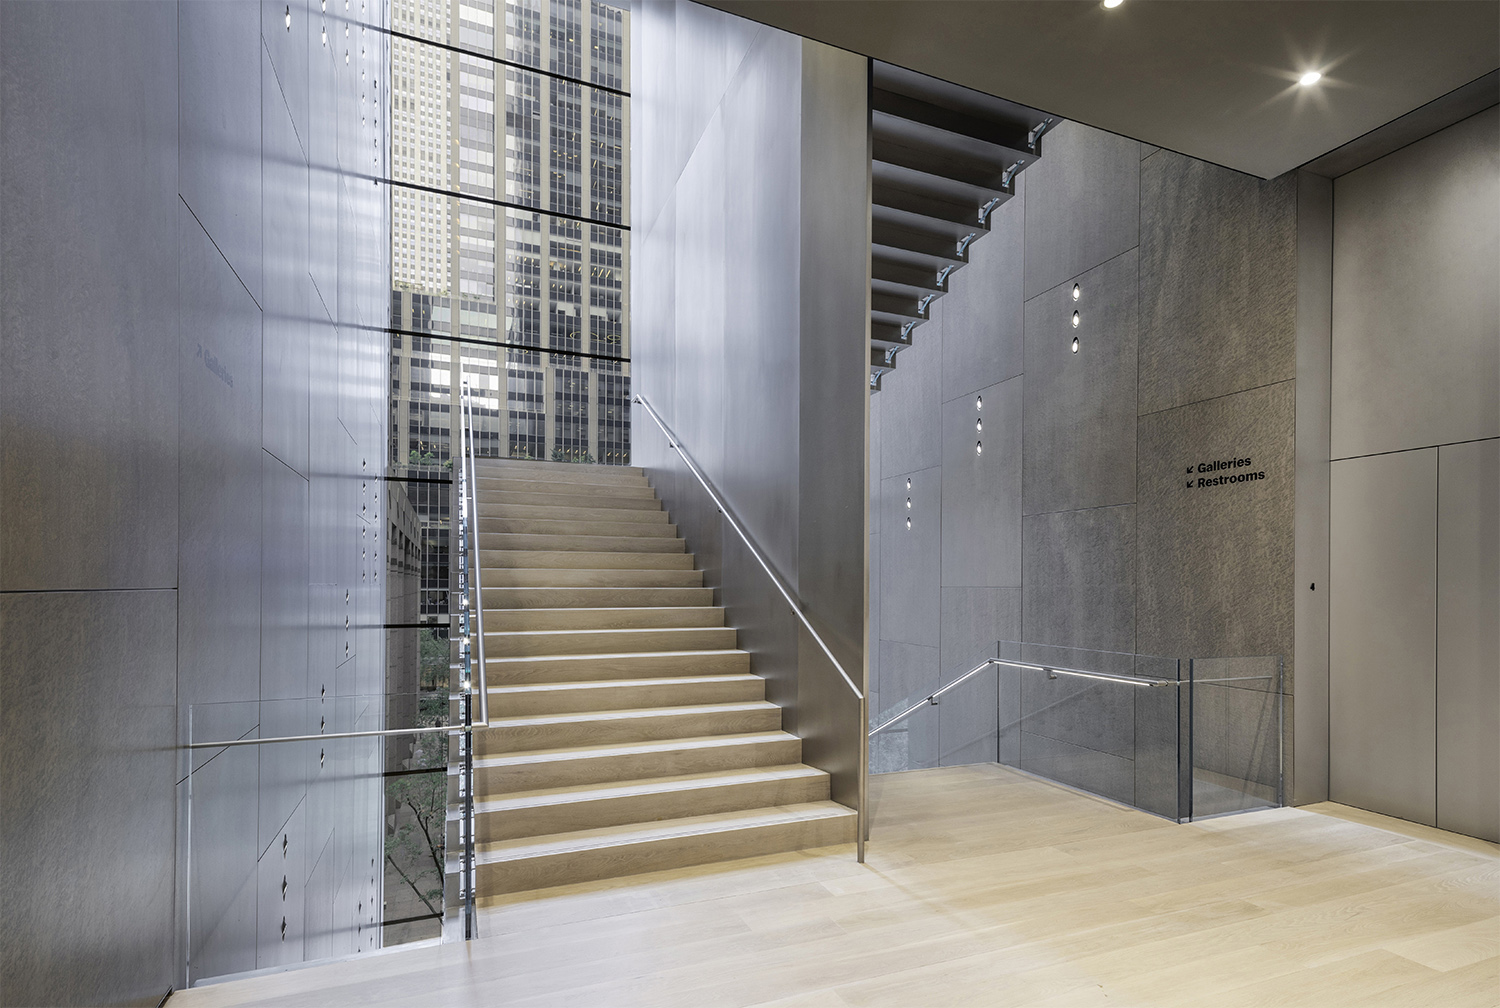 Interior view of The Museum of Modern Art, Blade Stair, Level 3 Landing Photography by Brett Beyer